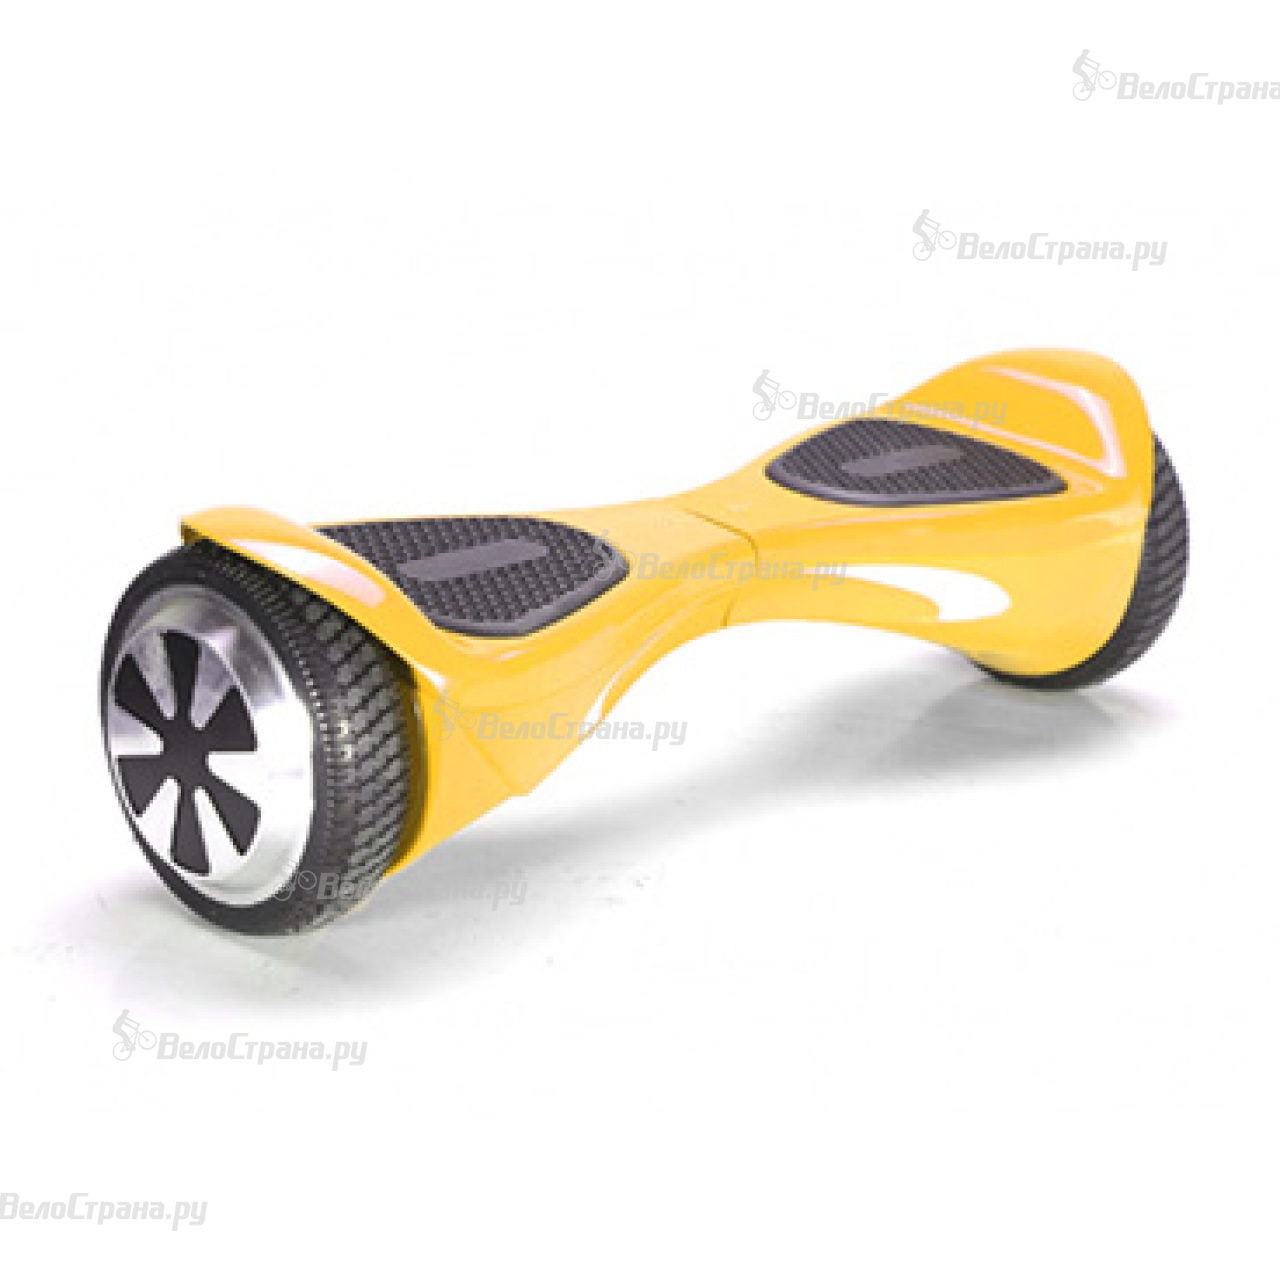 Гироскутер Smart Balance 6,5″ Colibri 6 5 adult electric scooter hoverboard skateboard overboard smart balance skateboard balance board giroskuter or oxboard